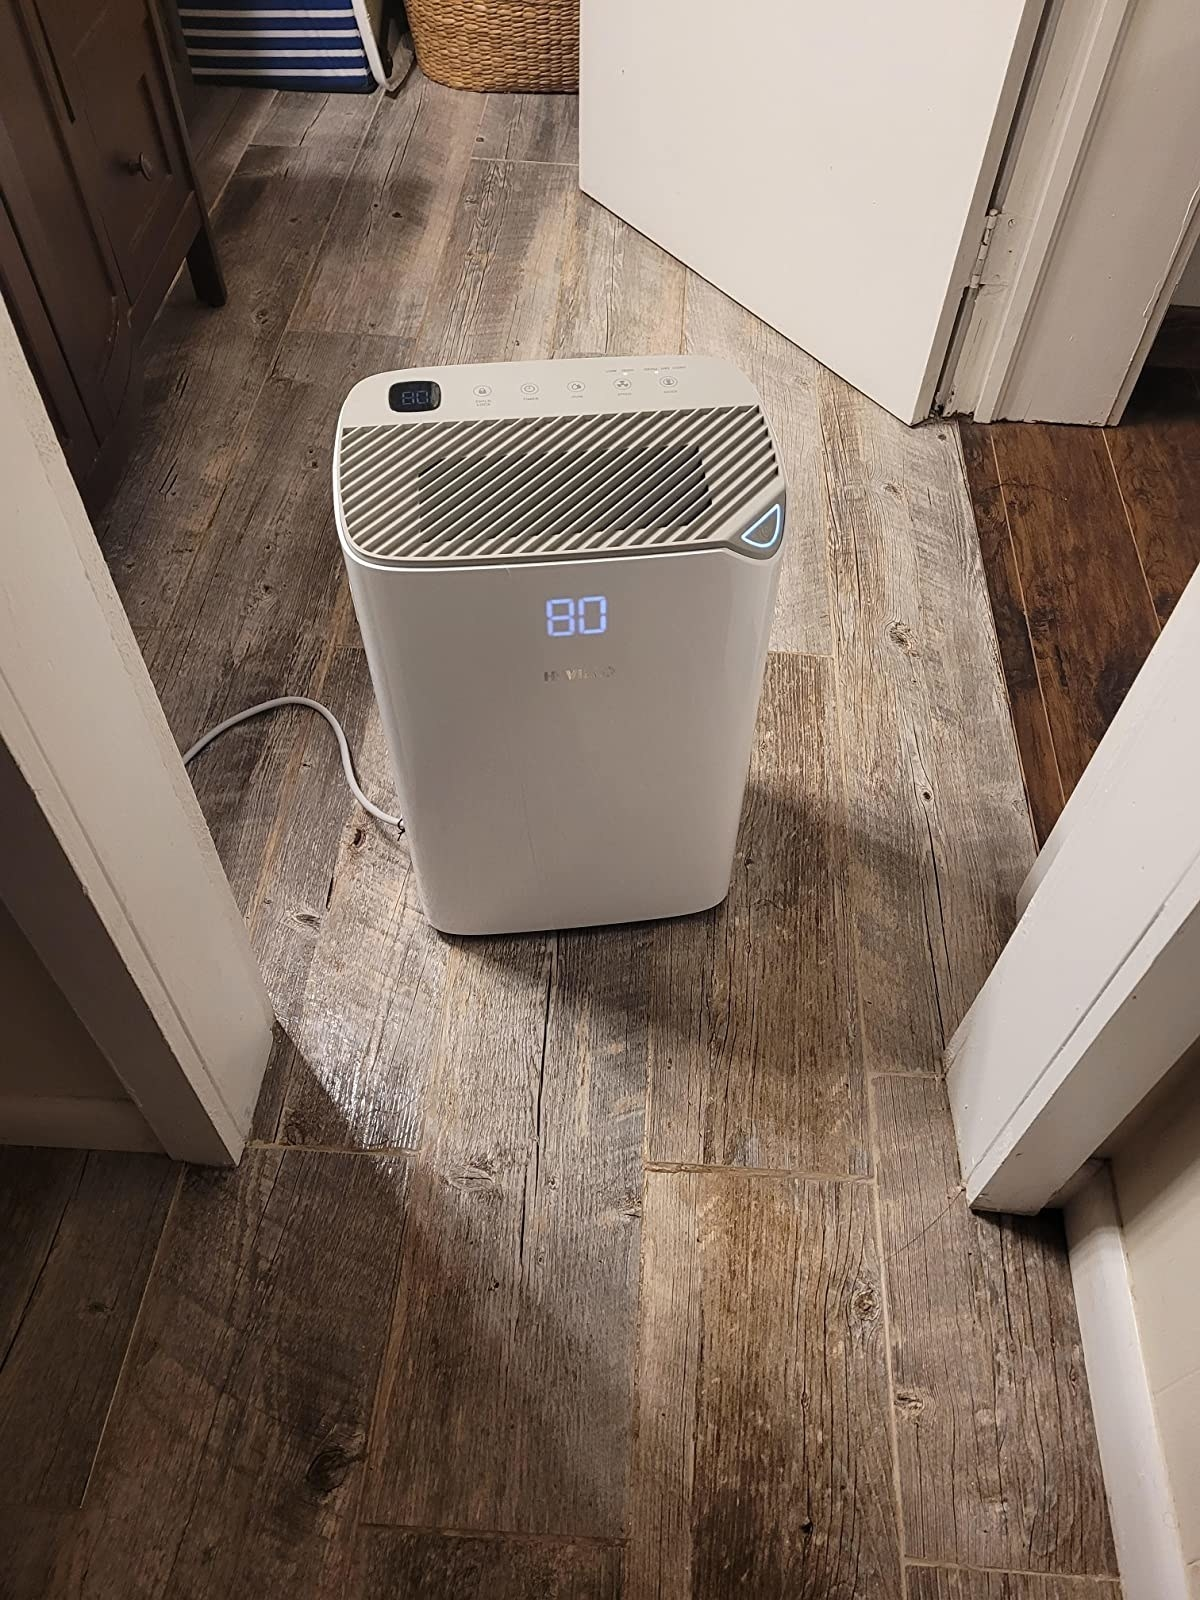 reviewer image of the hevillo dehumidifier turned to 80